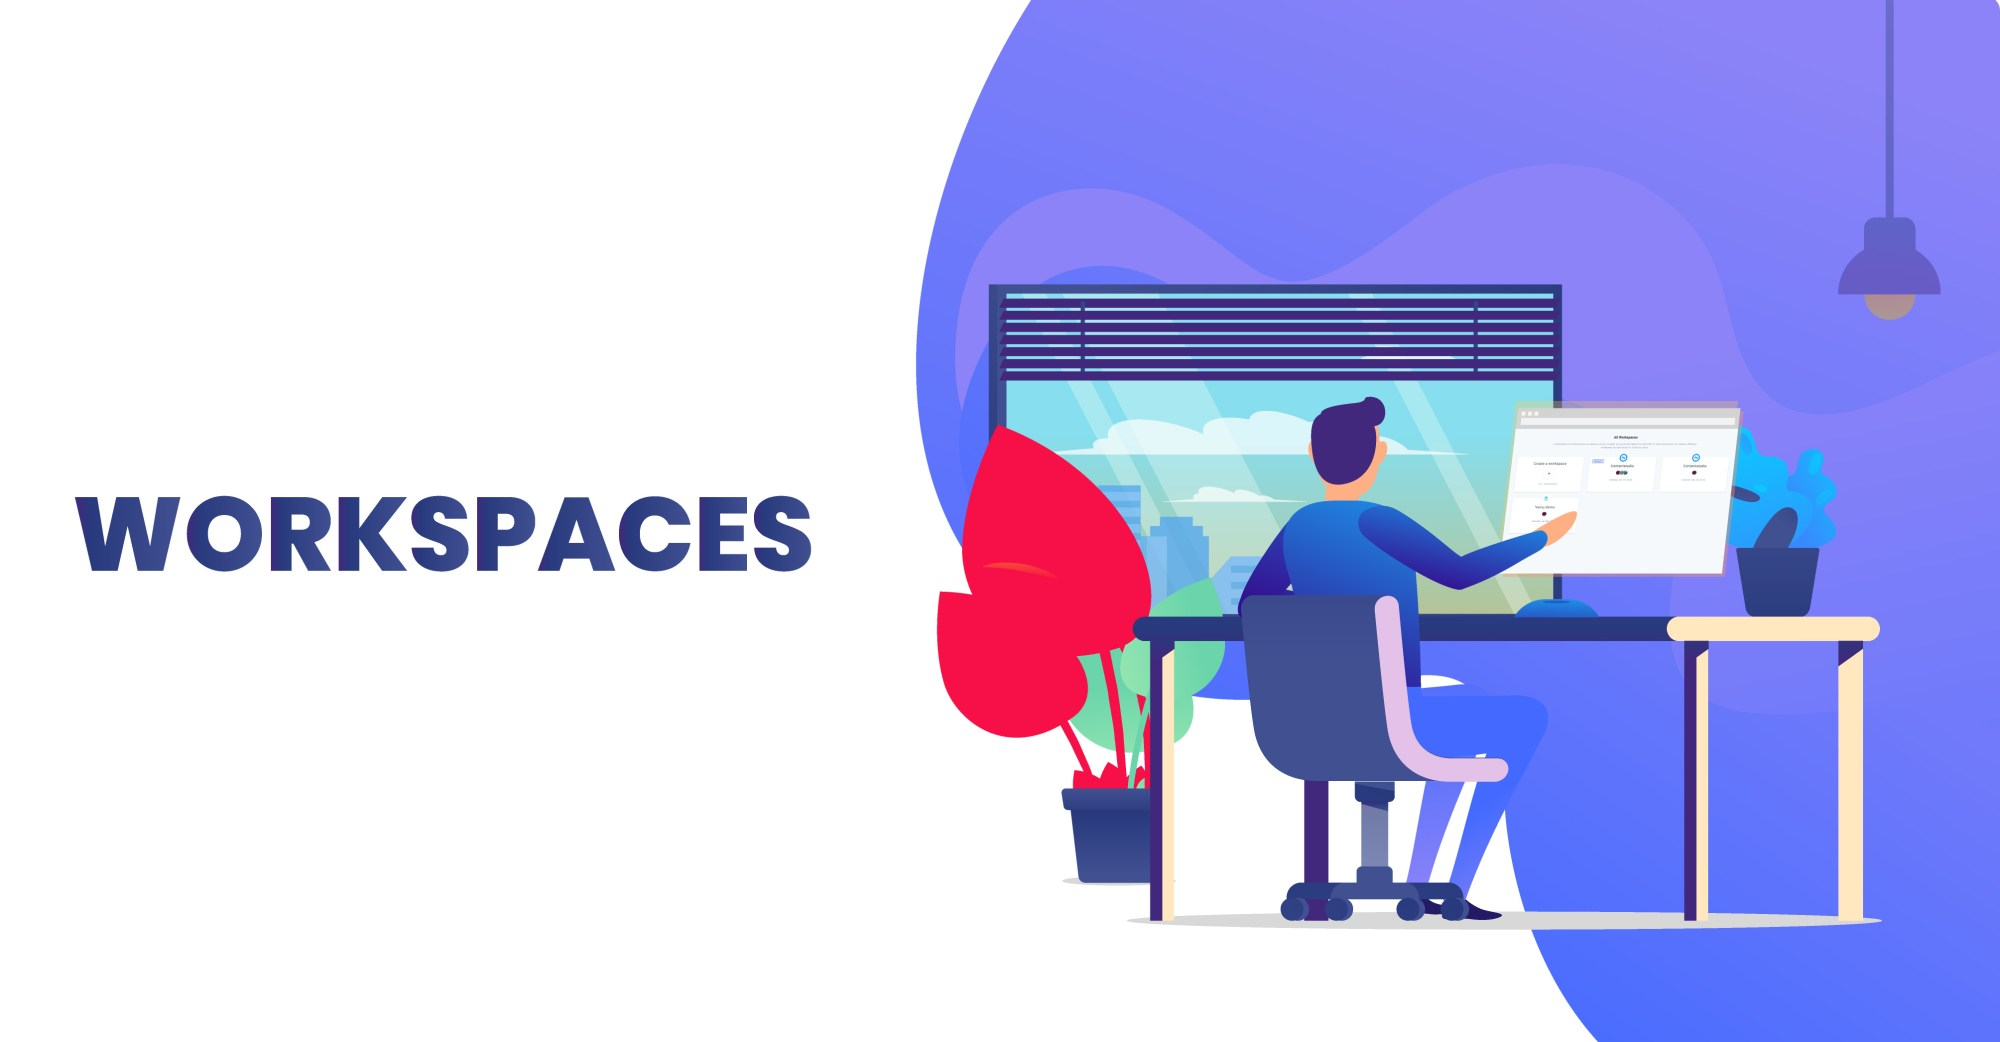 Workspaces - ContentStudio